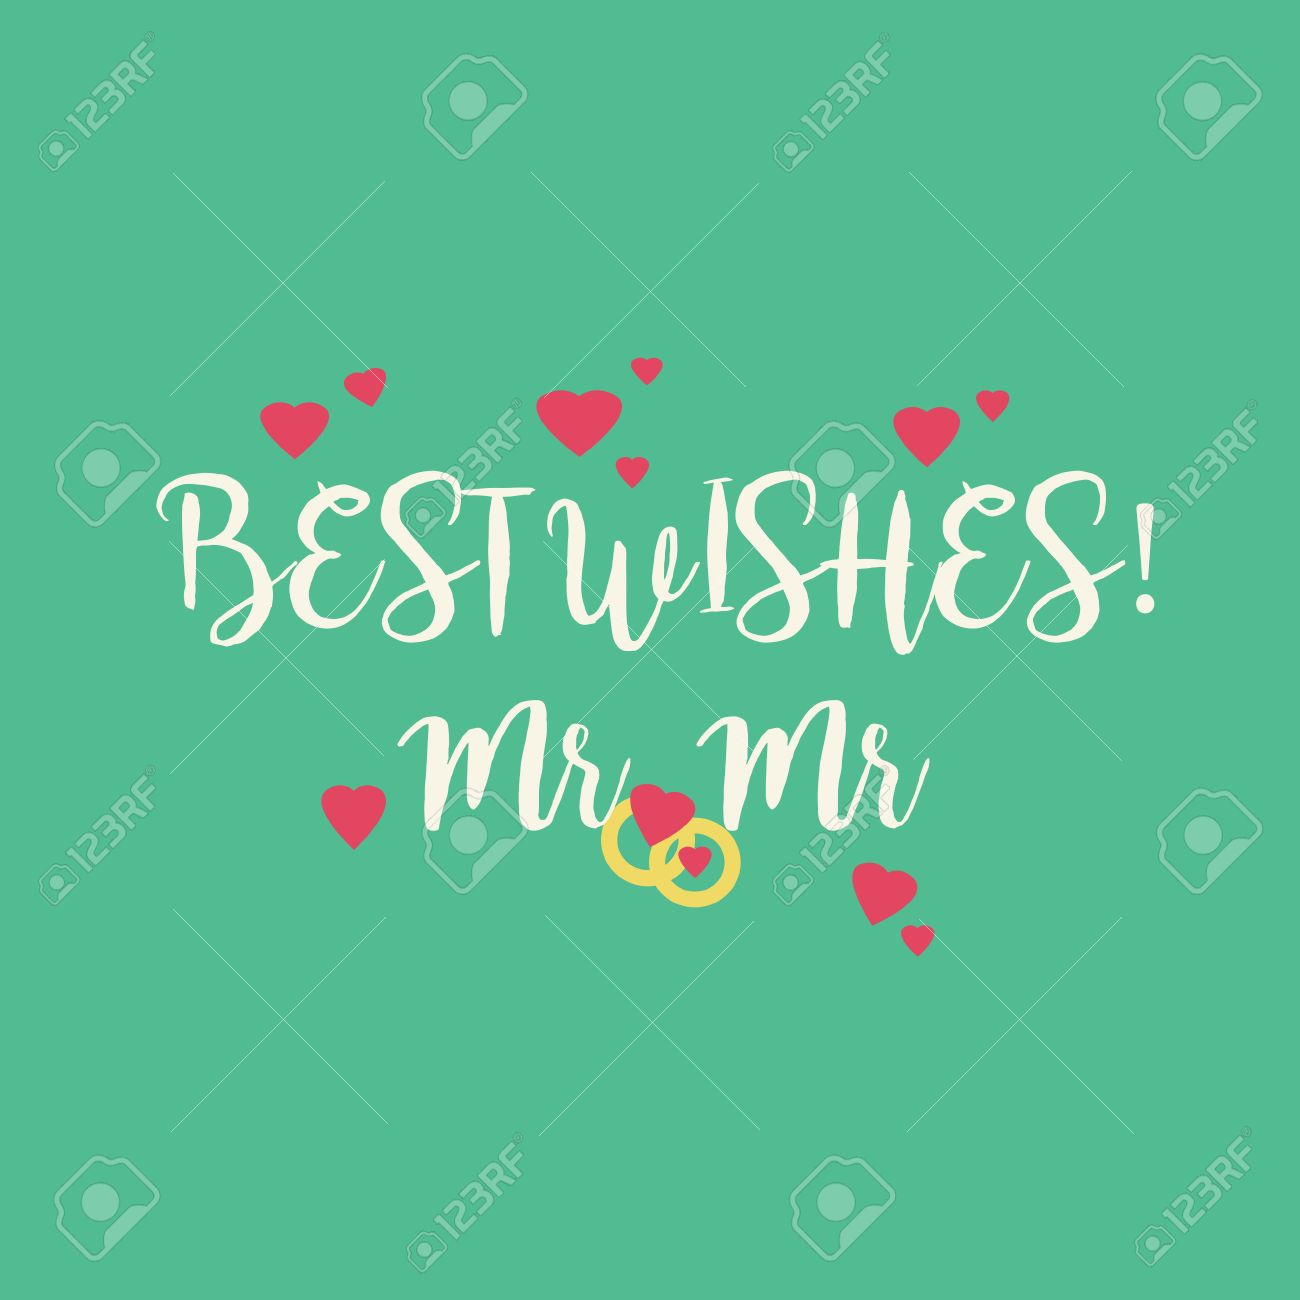 cute wedding best wishes mr mr congratulations greeting card stock